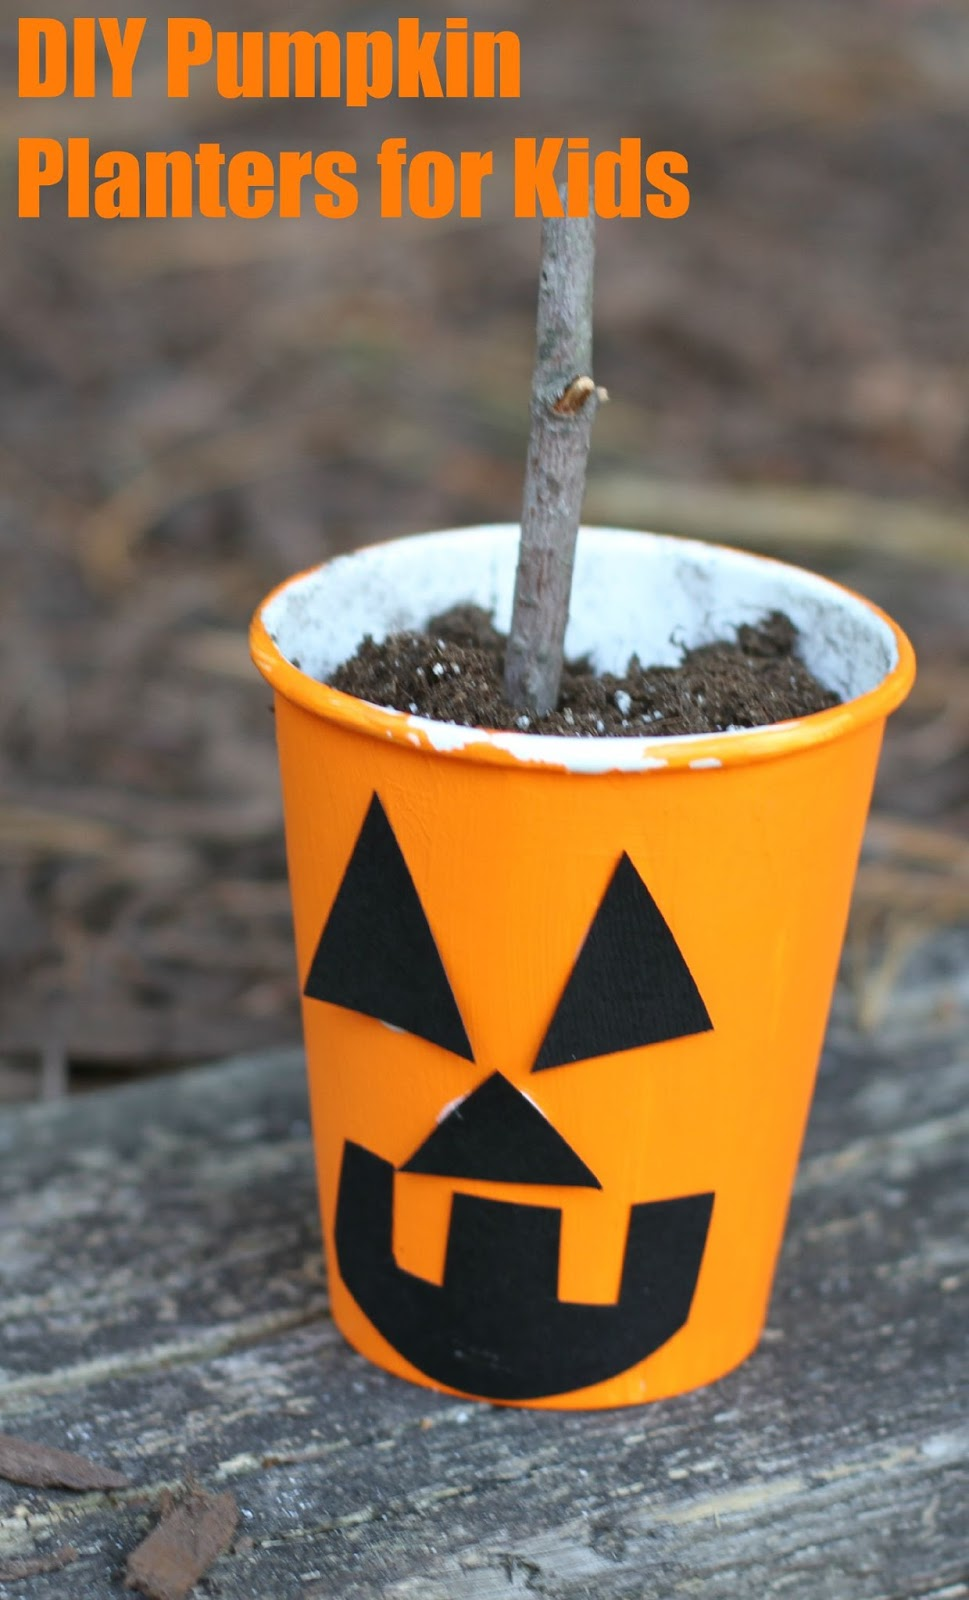 5 halloween crafts for kids easy projects to make with kids. Black Bedroom Furniture Sets. Home Design Ideas